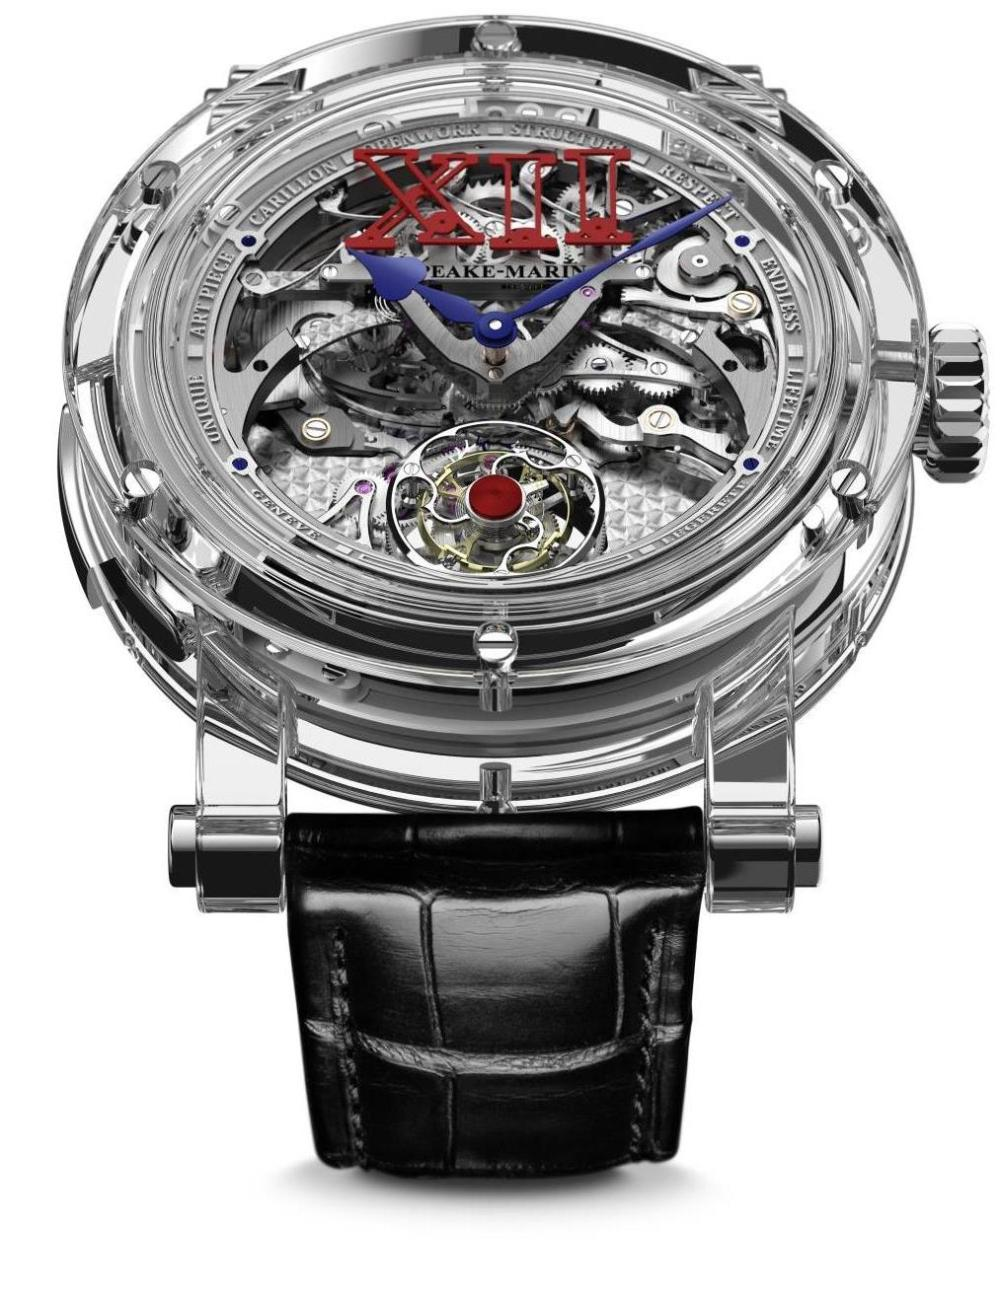 Speake-Marin Minute Repeater Flying Tourbillon Légèreté